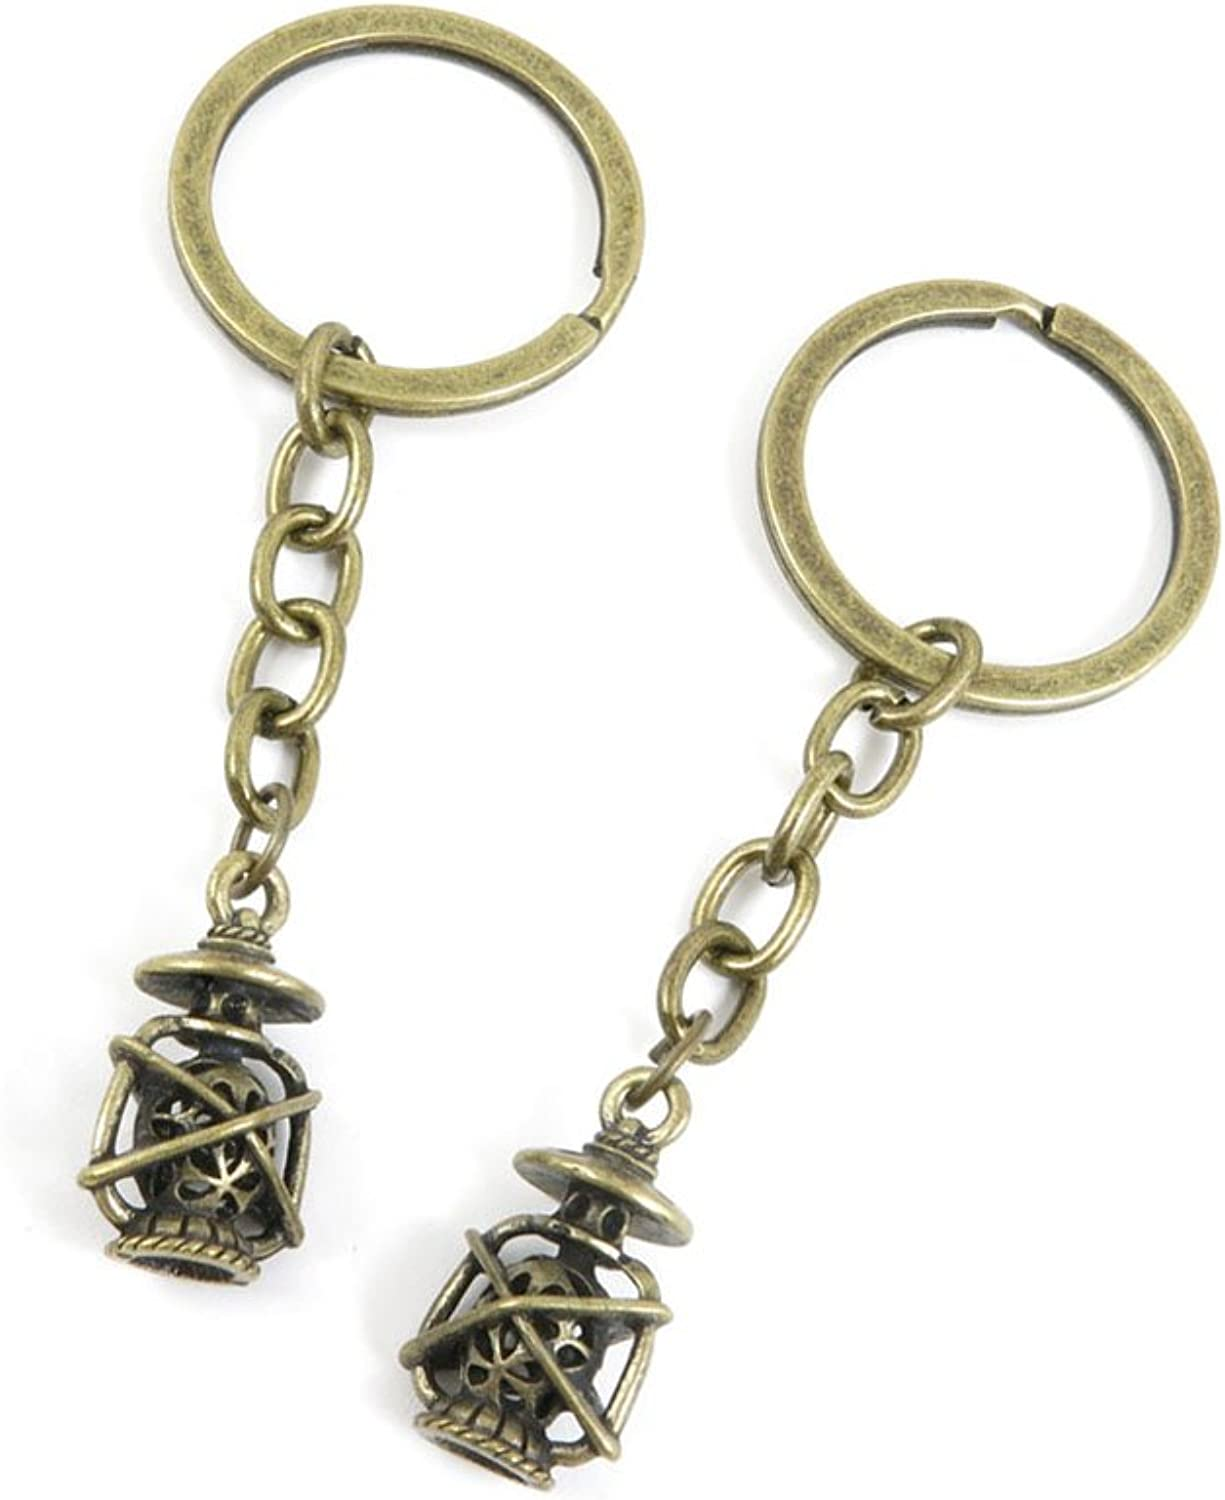 100 PCS Keyrings Keychains Key Ring Chains Tags Jewelry Findings Clasps Buckles Supplies O8HY4 Lantern